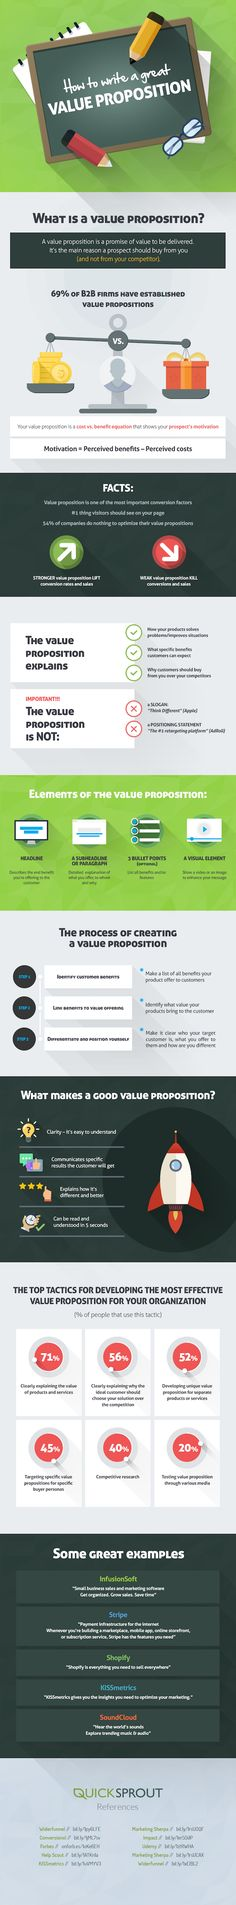 How to Write a Strong Value Proposition [Infographic], via @HubSpot